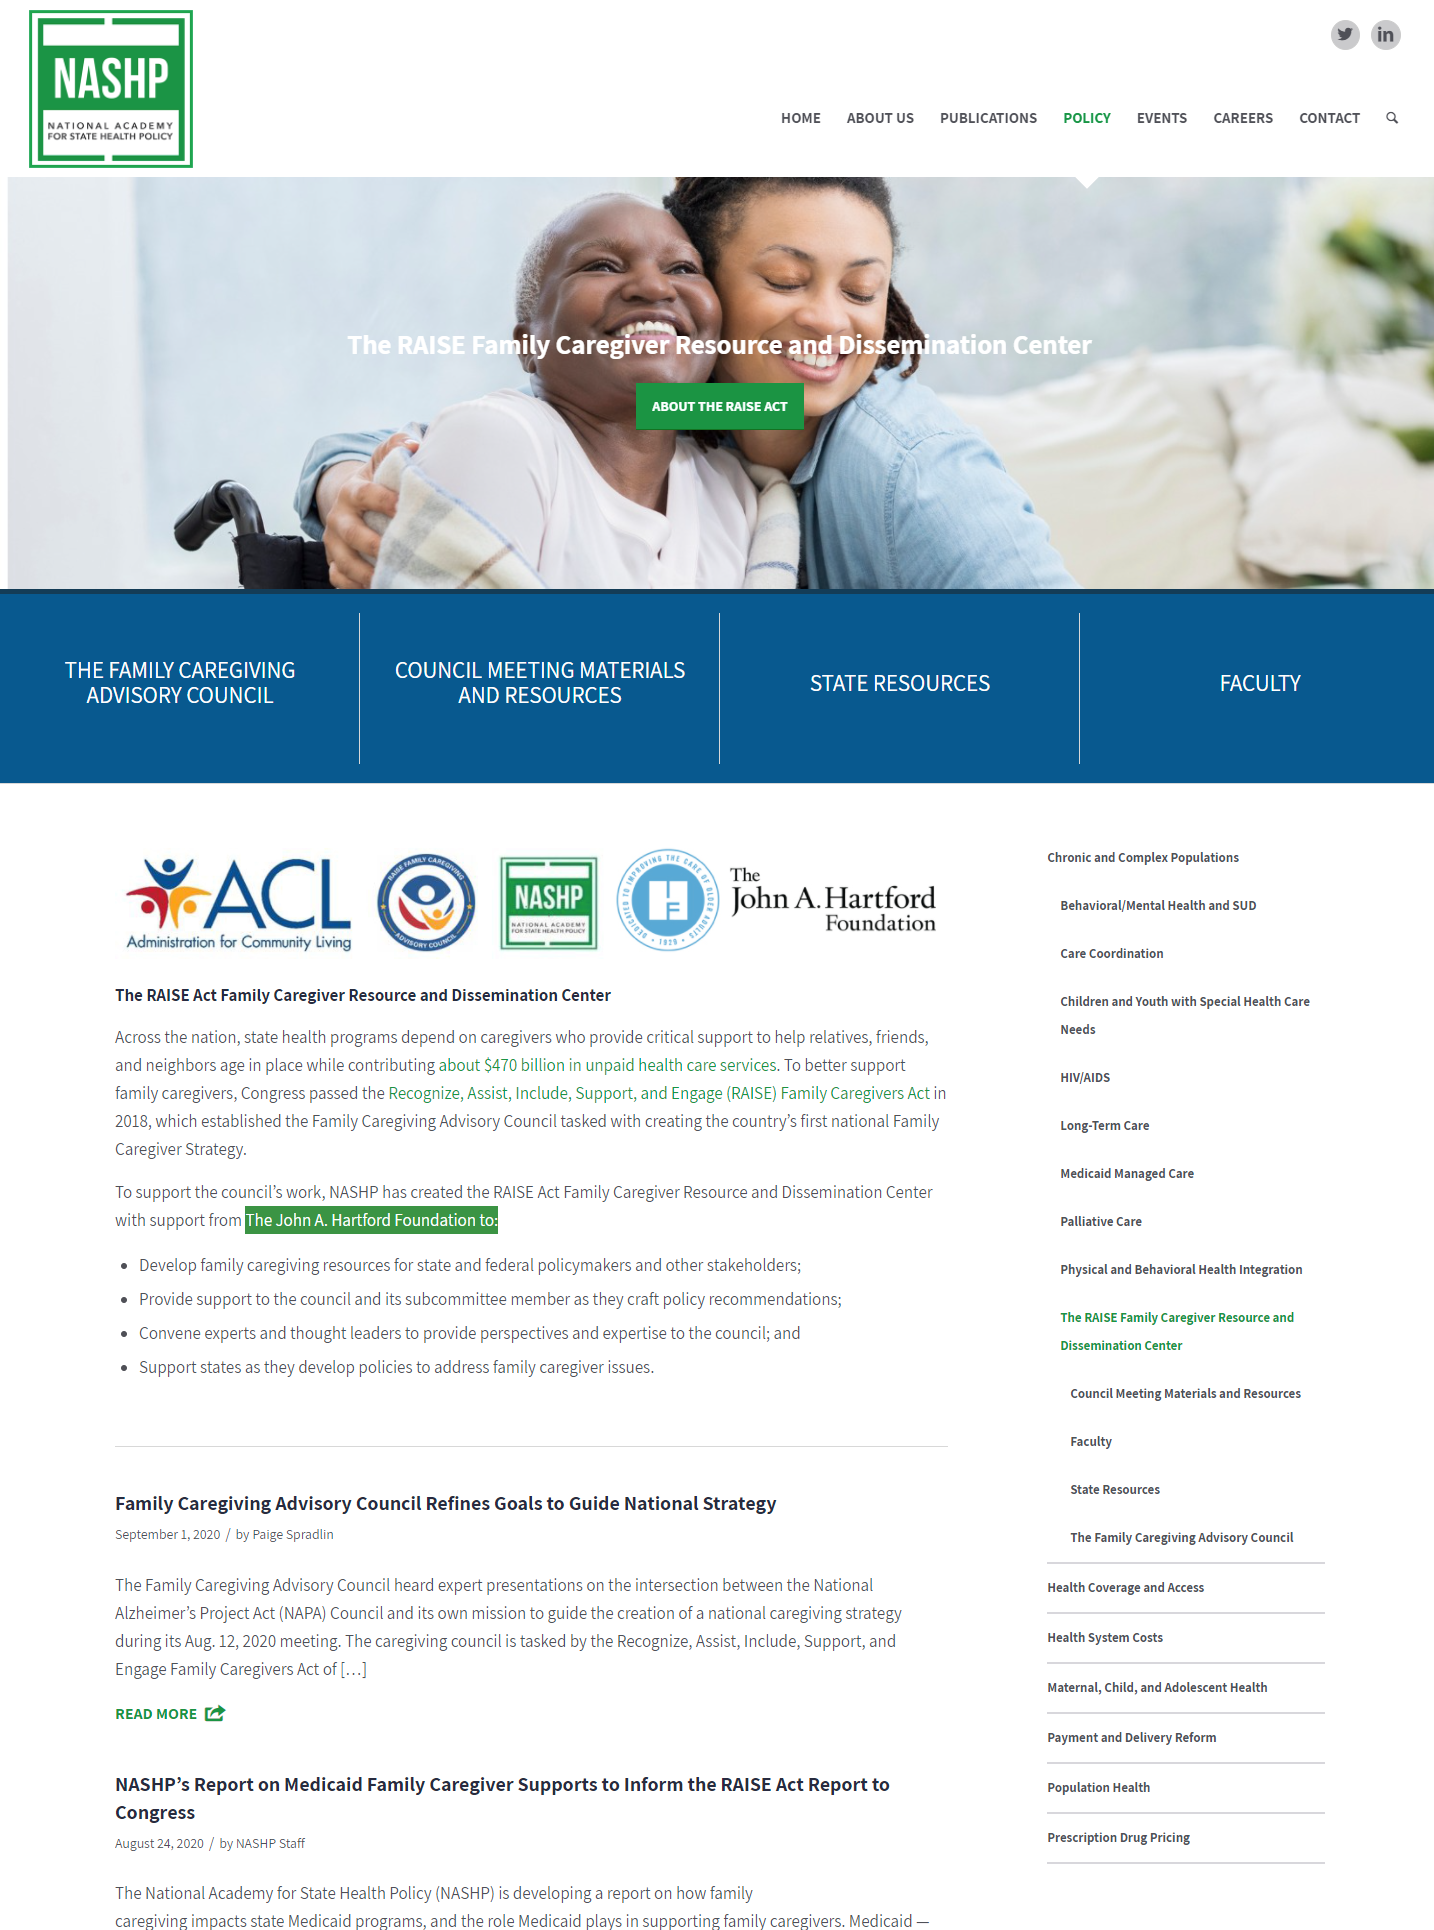 The RAISE Family Caregiver Resource and Dissemination Center